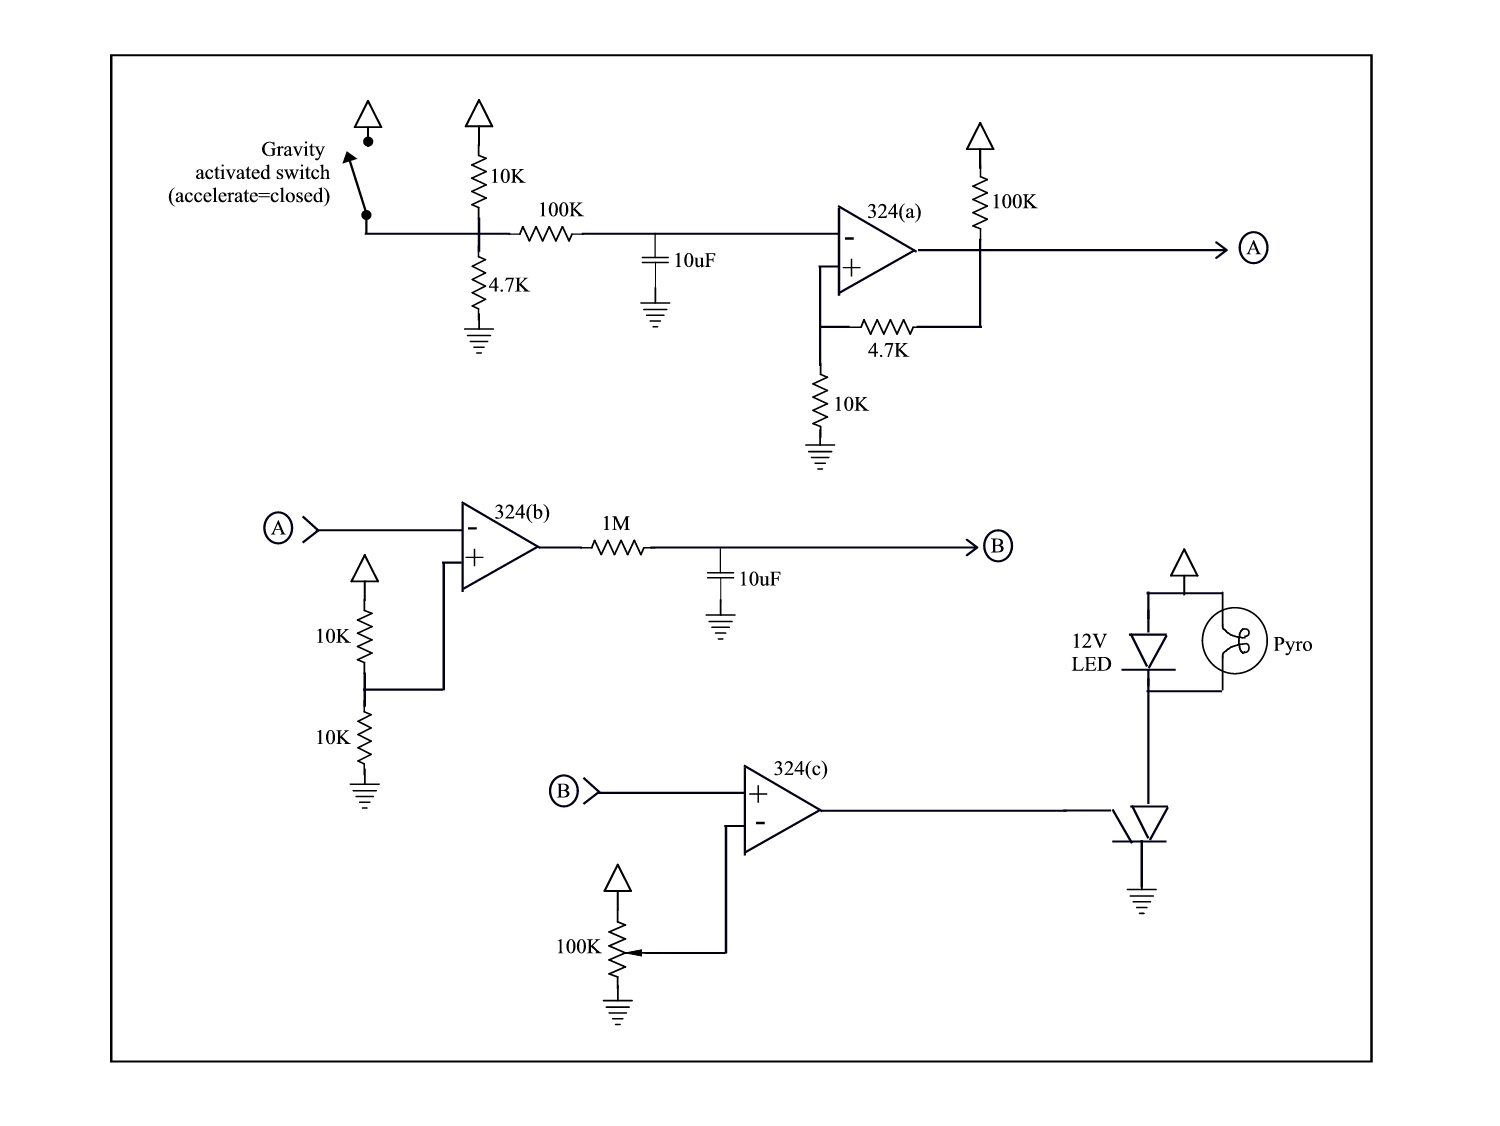 And Wiring Diagram For Pioneer Car Radio Wiring Diagram Polesioco